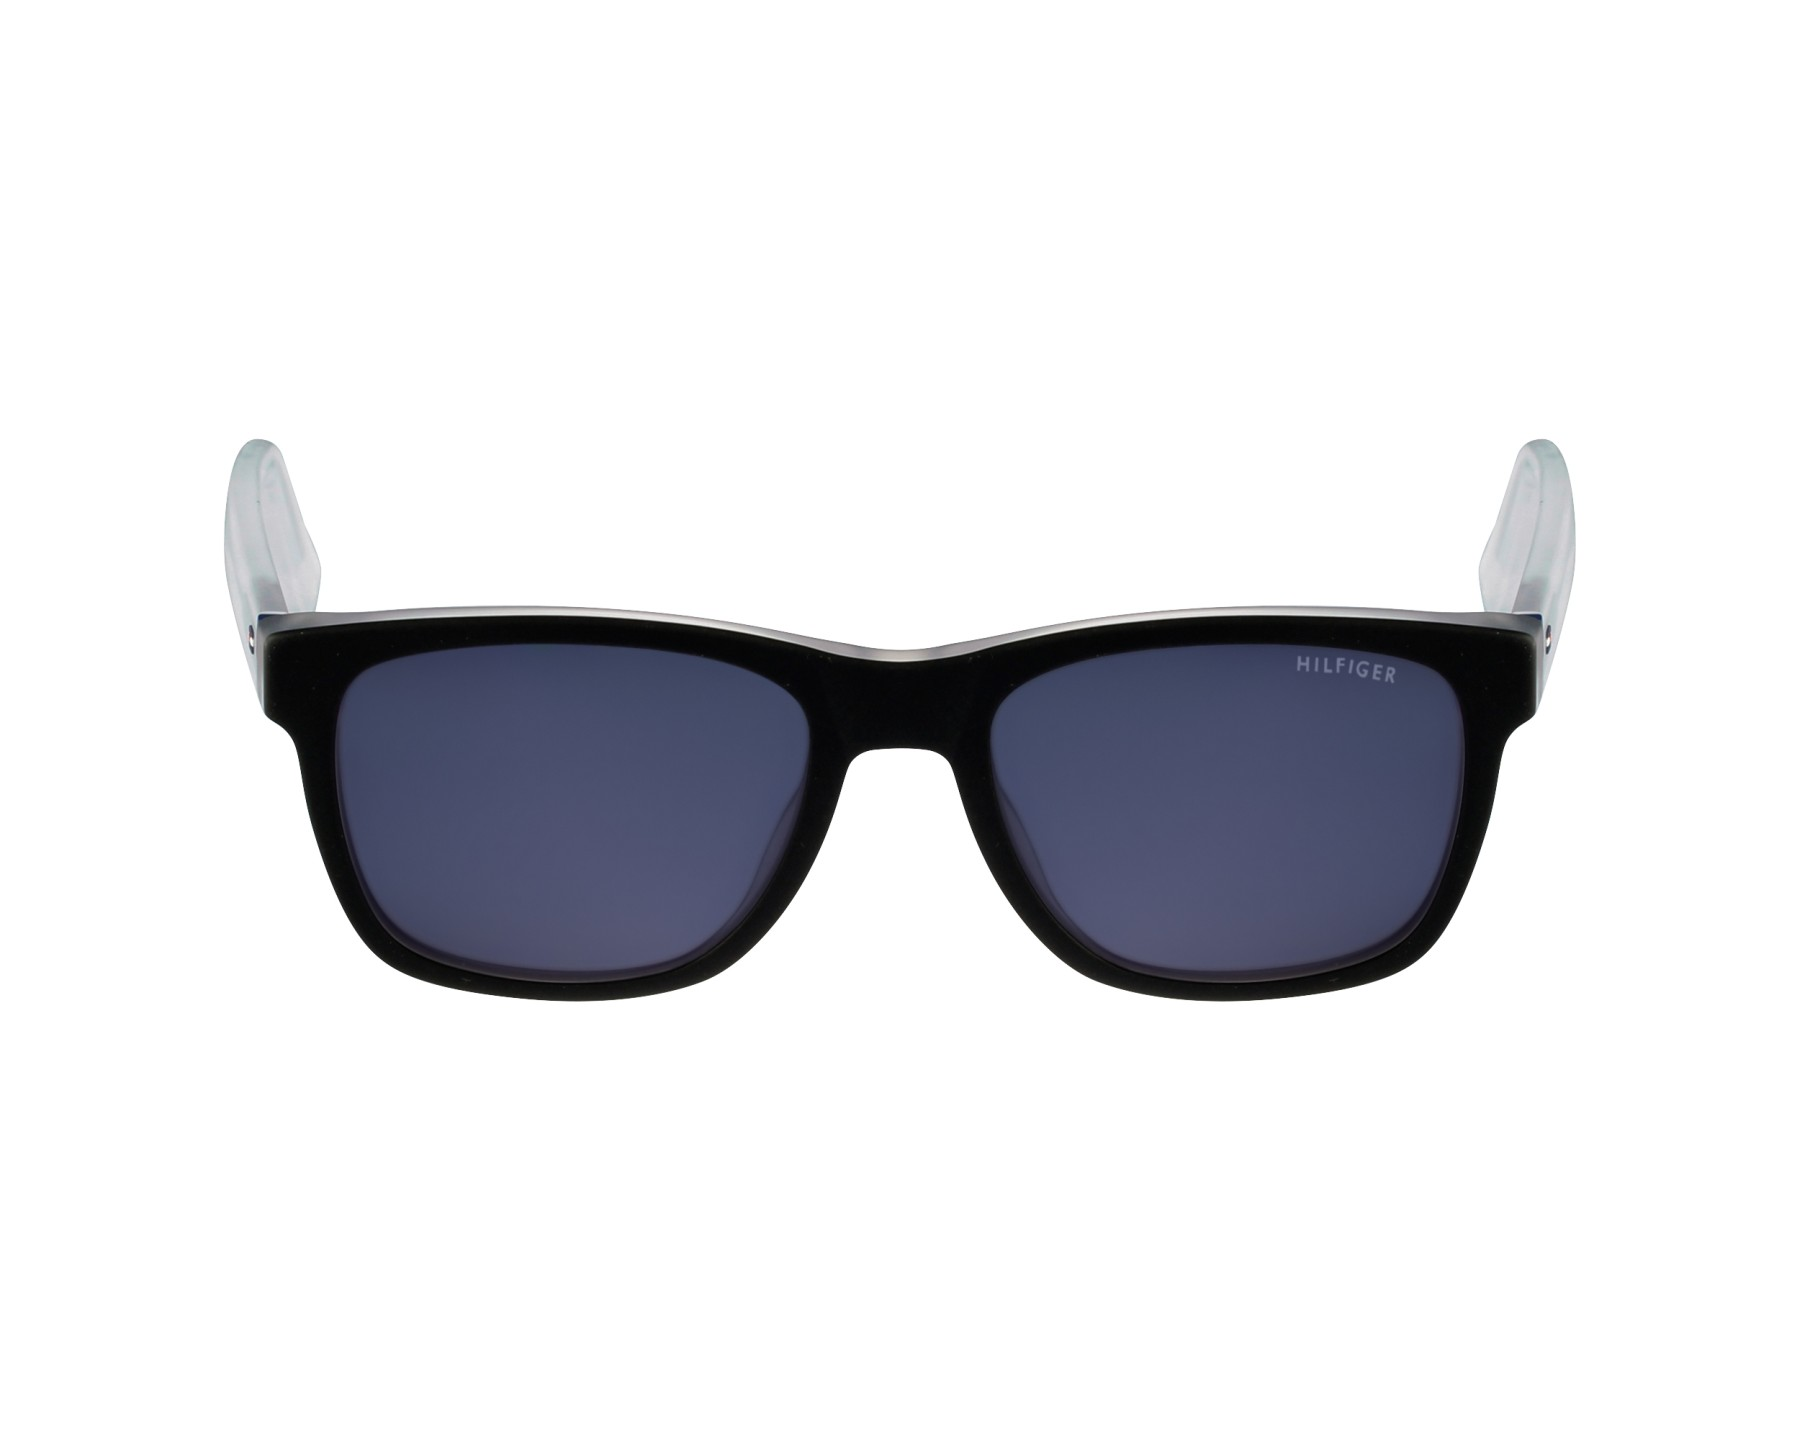 ab0f147d137 Sunglasses Tommy Hilfiger TH-1360-S K52 72 53-19 Blue Crystal